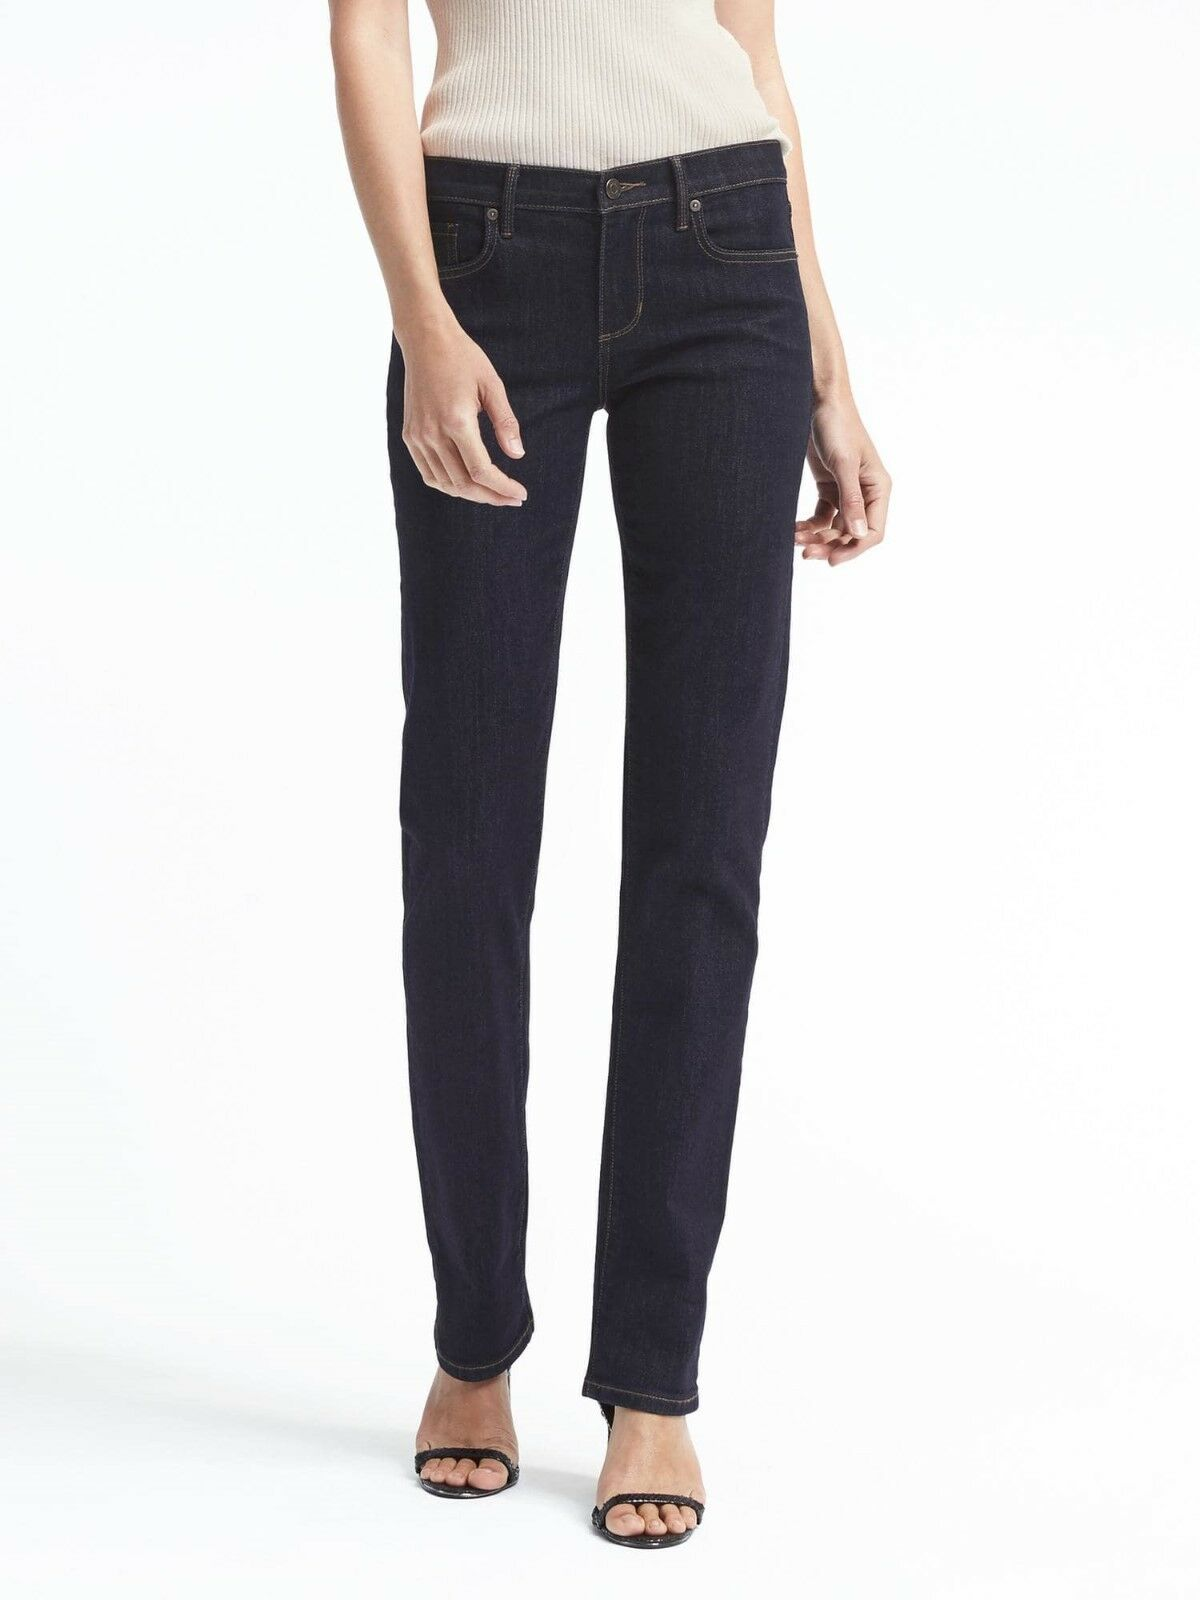 BANANA REPUBLIC 875793 RINSE WASH GIRLFRIEND JEANS PANTS  NWTS 28 6 29 8